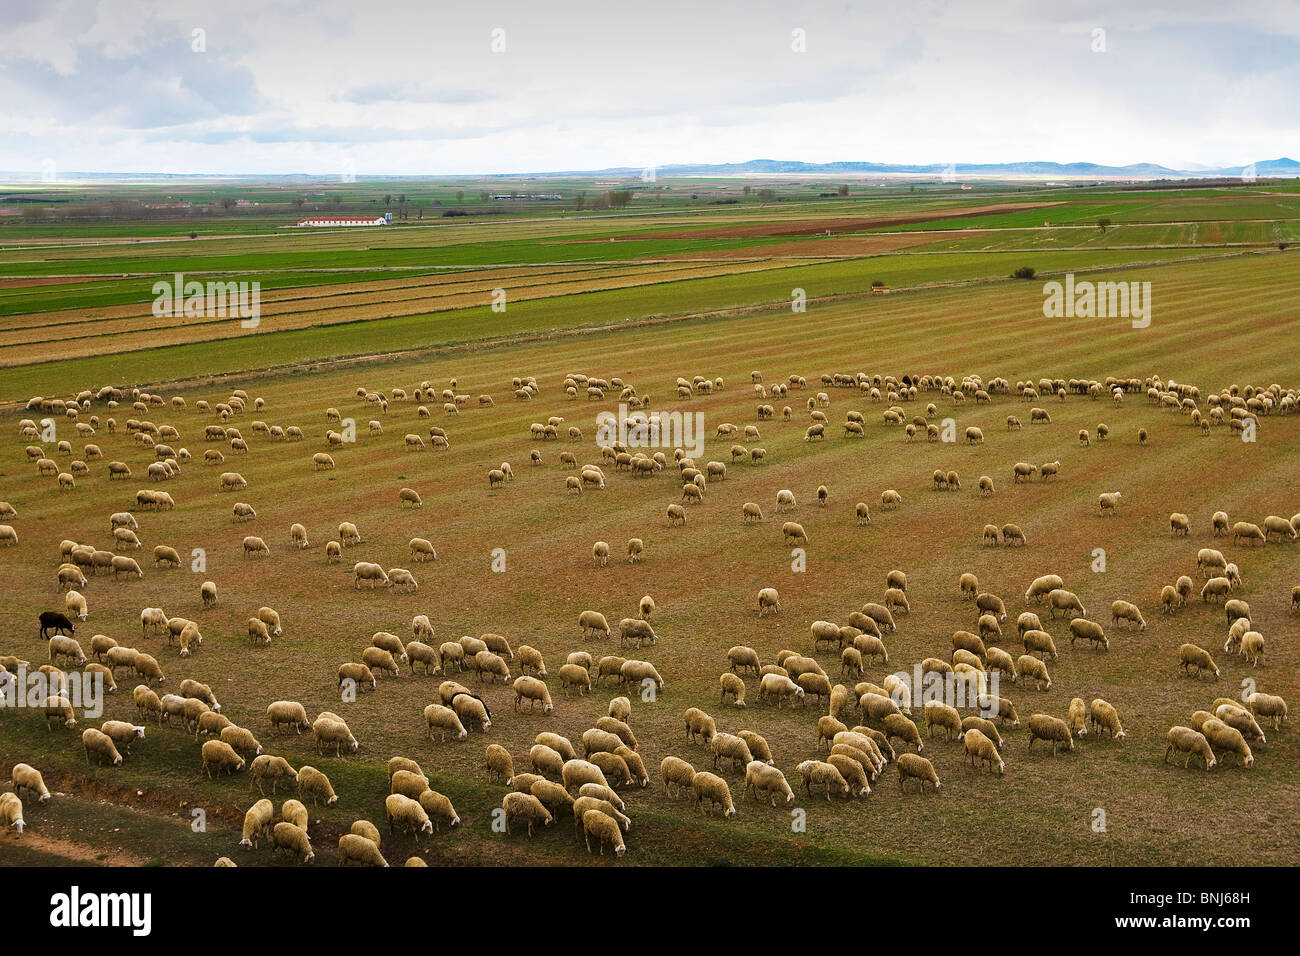 Spain Aragon region area Teruel province herds sheep agriculture field, - Stock Image